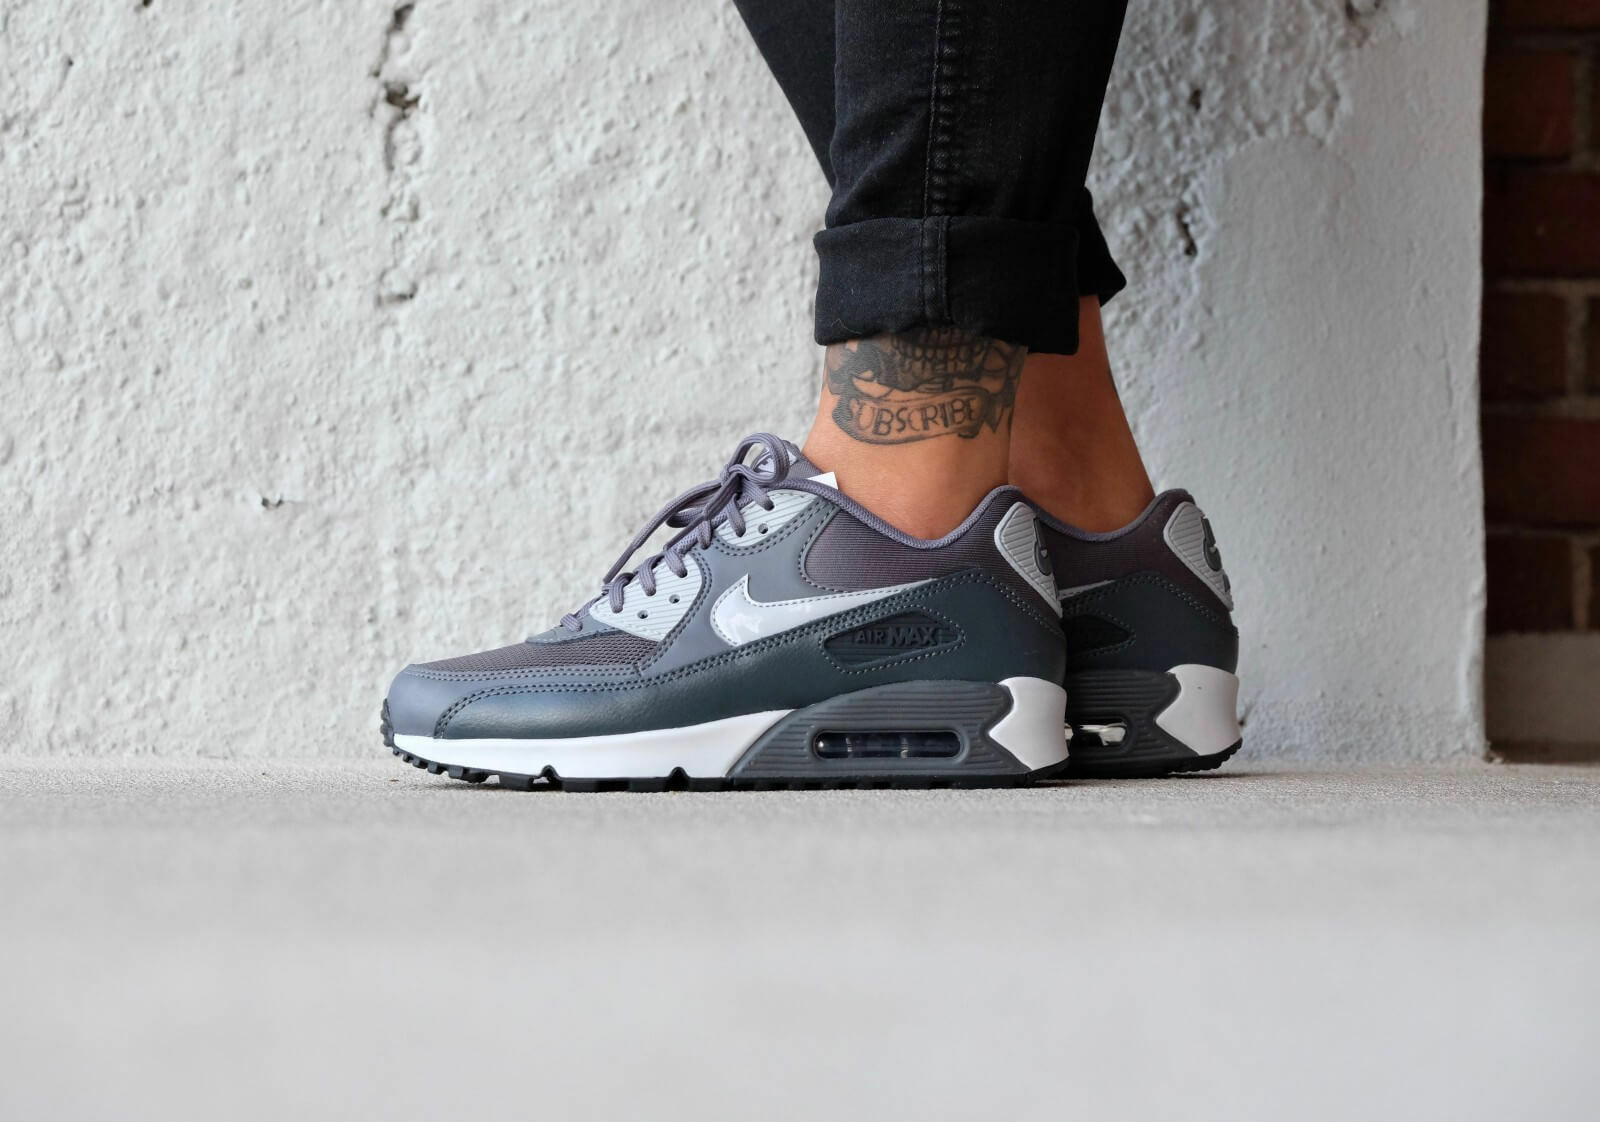 Nike Air Max 90 Essential Dark grey Wolf grey-Anthracite 616730-030 Wmn Sz 8